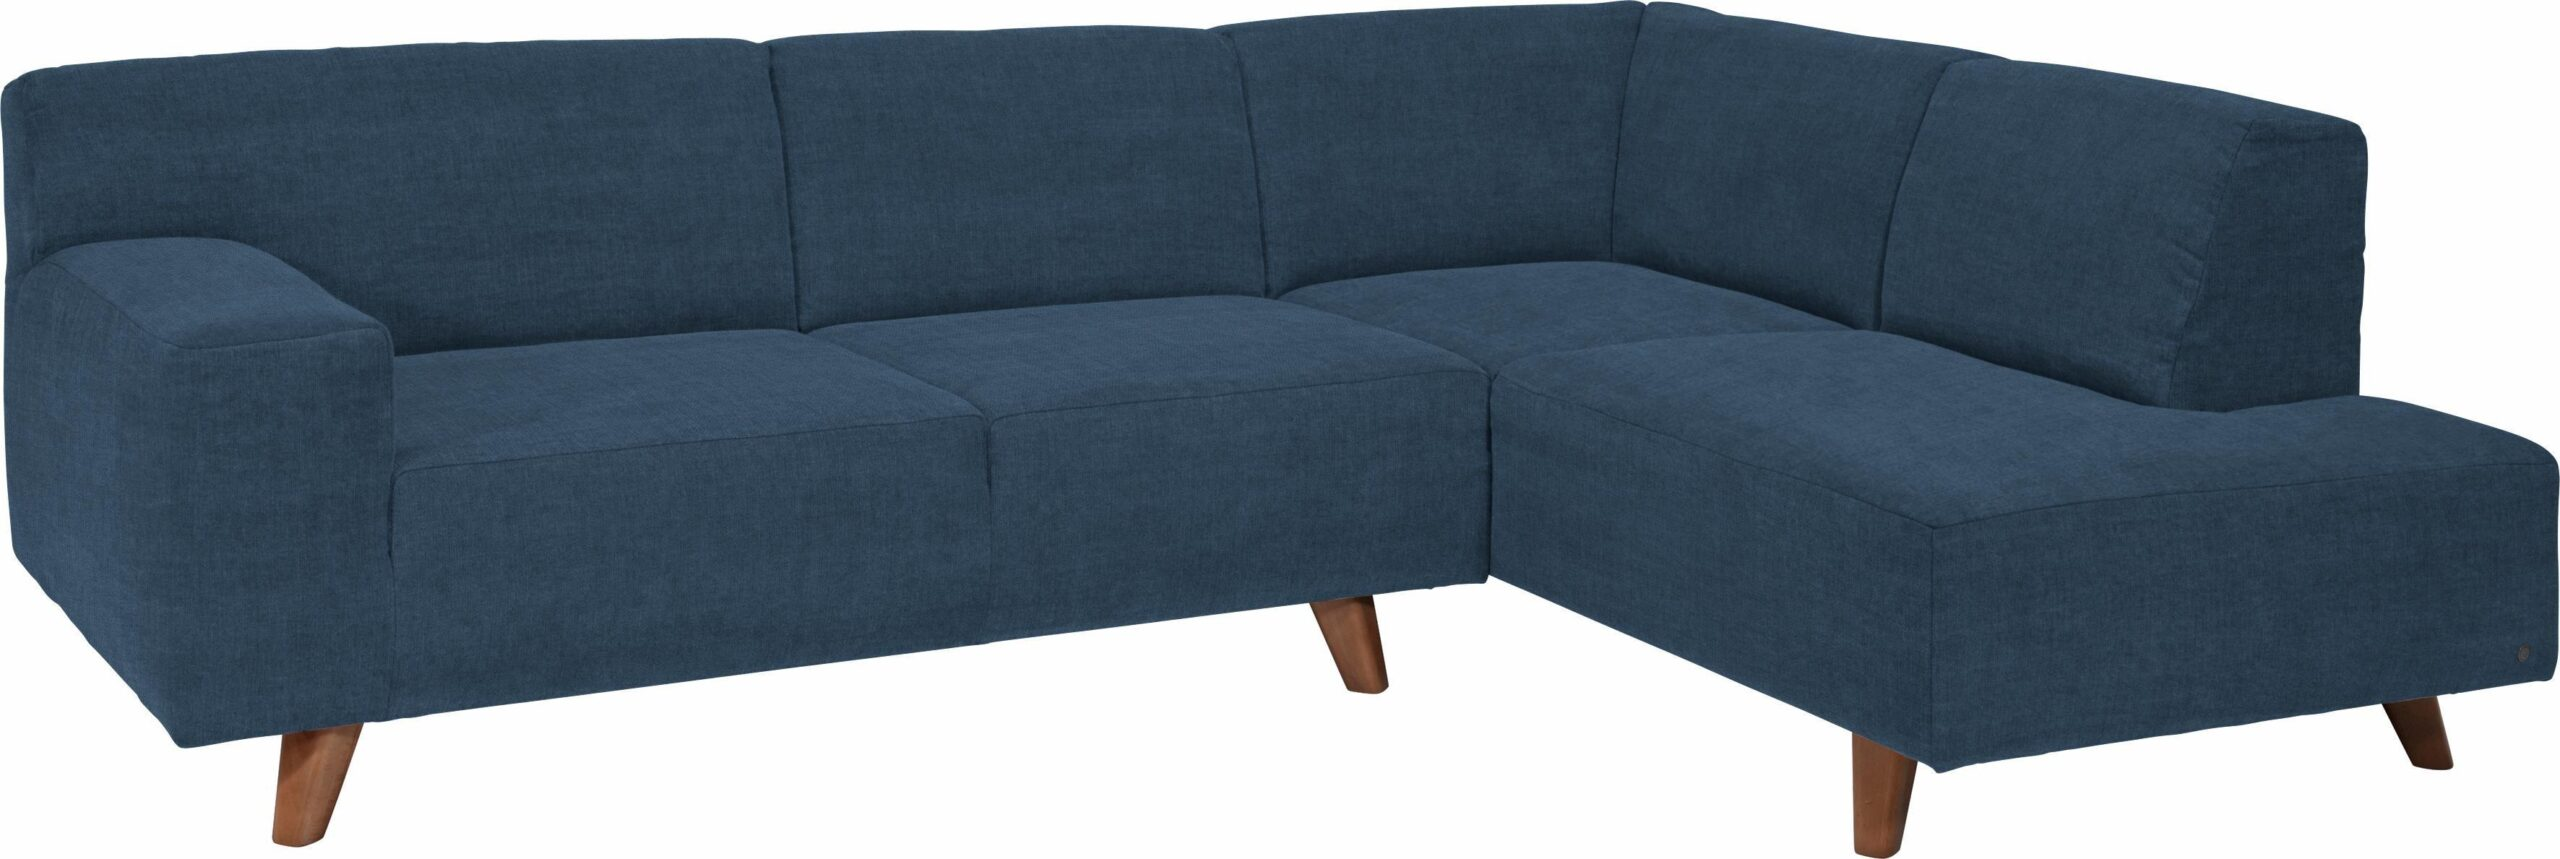 Full Size of Tom Tailor Sofa Ecksofa Nordic Pure Kaufen Online Bei Otto Sitzhöhe 55 Cm Lederpflege Günstig In L Form Home Affaire überzug Jugendzimmer Walter Knoll Rotes Sofa Tom Tailor Sofa